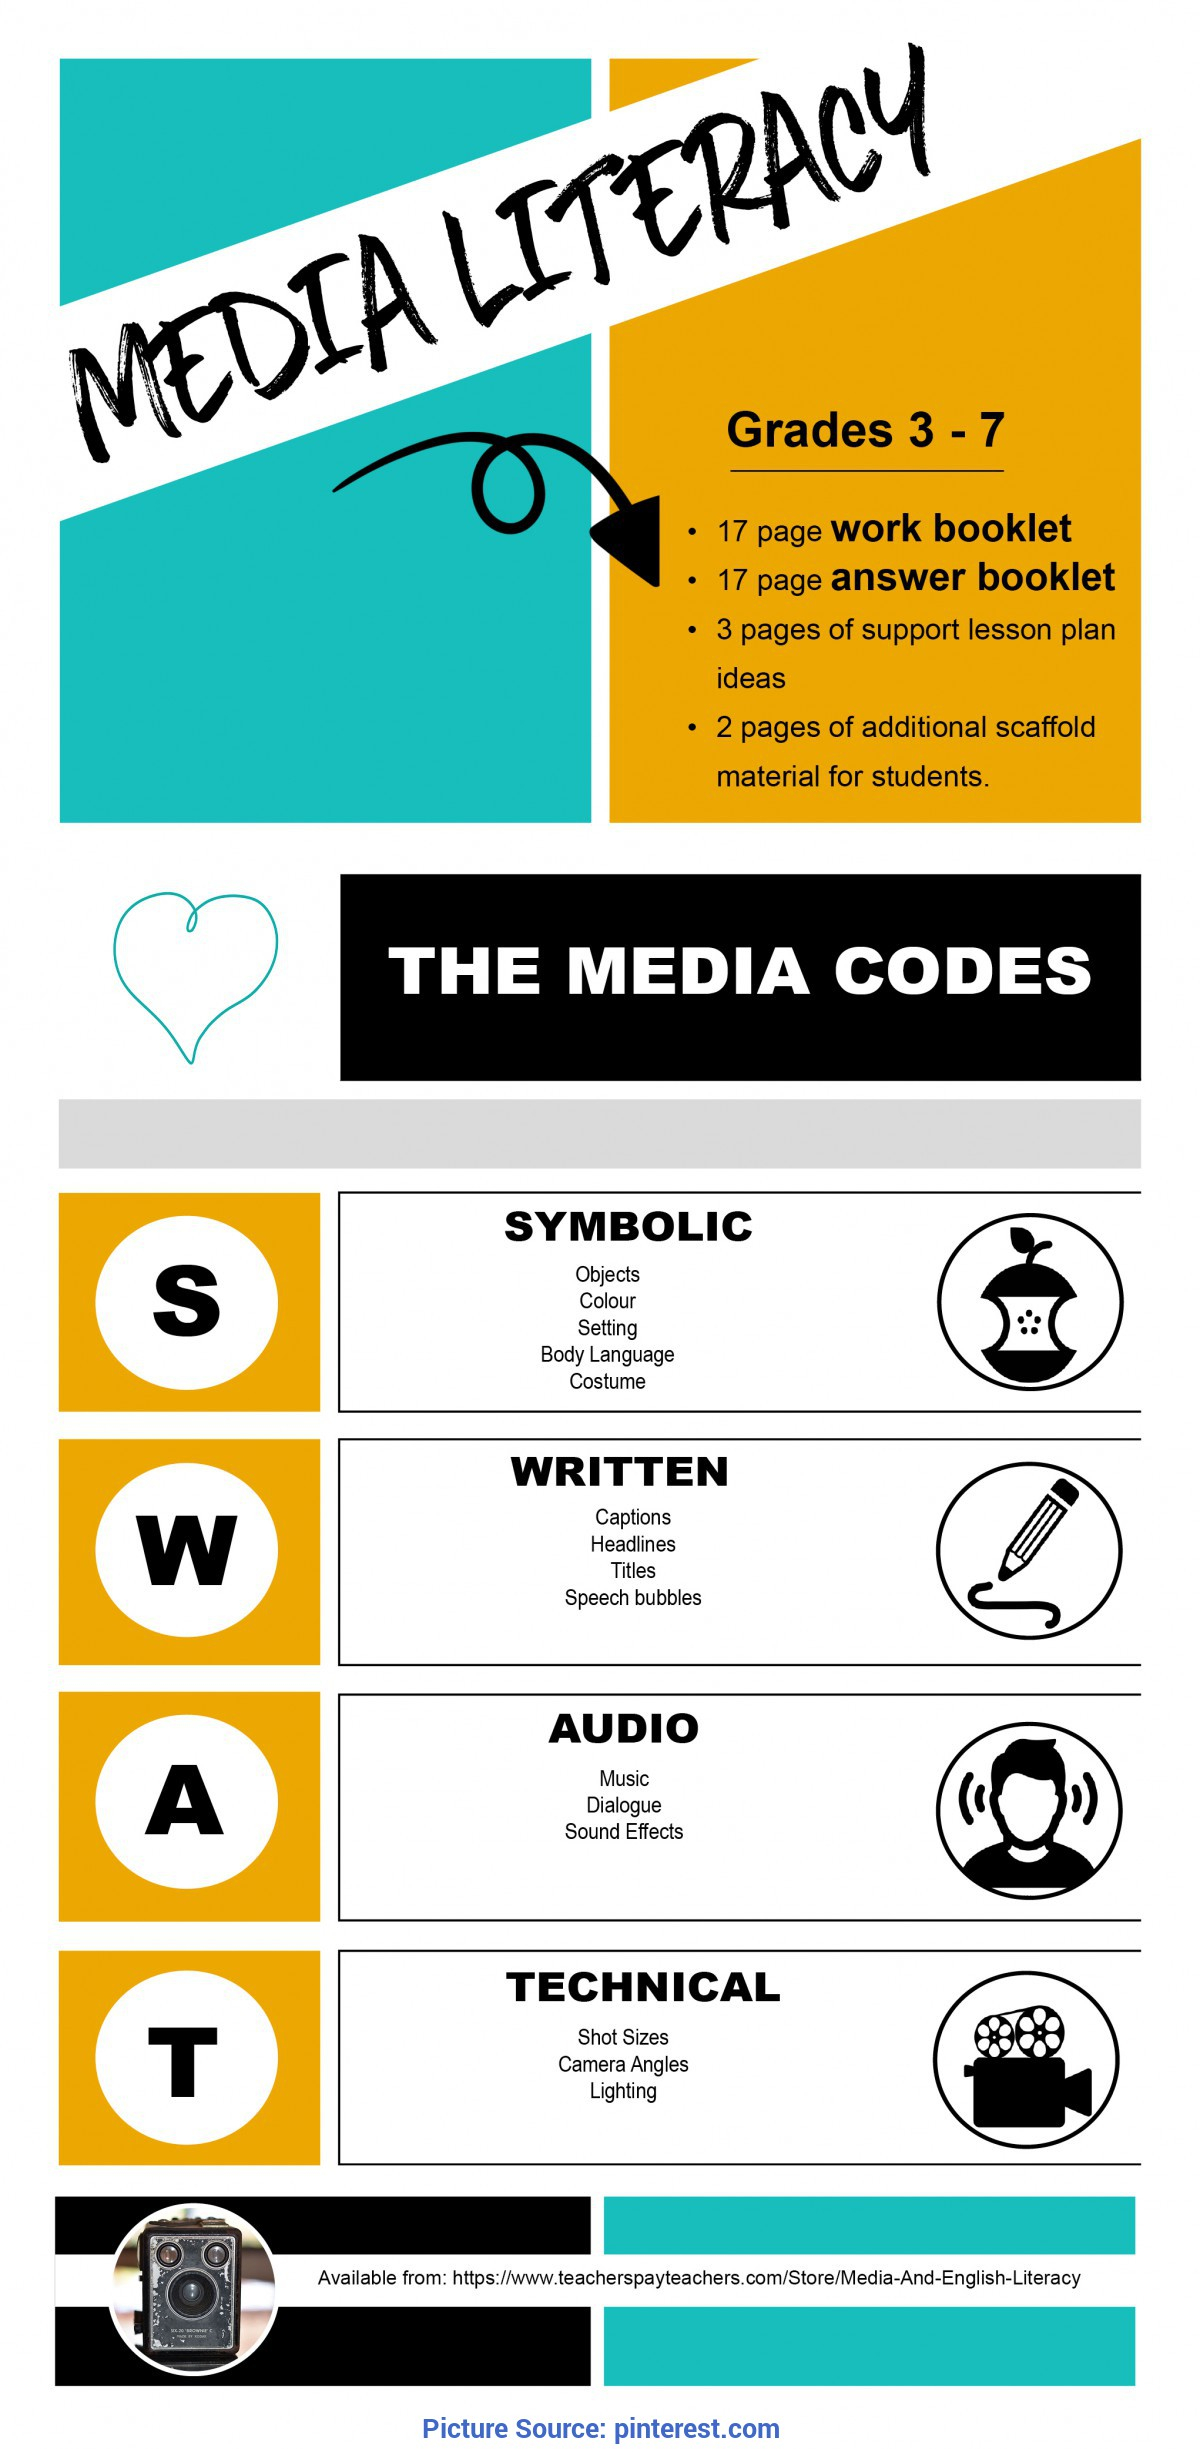 Best Visual Literacy Lesson Plans The 4 Media Codes - Media Literacy Worksheets - Grades 3-7 | Medi